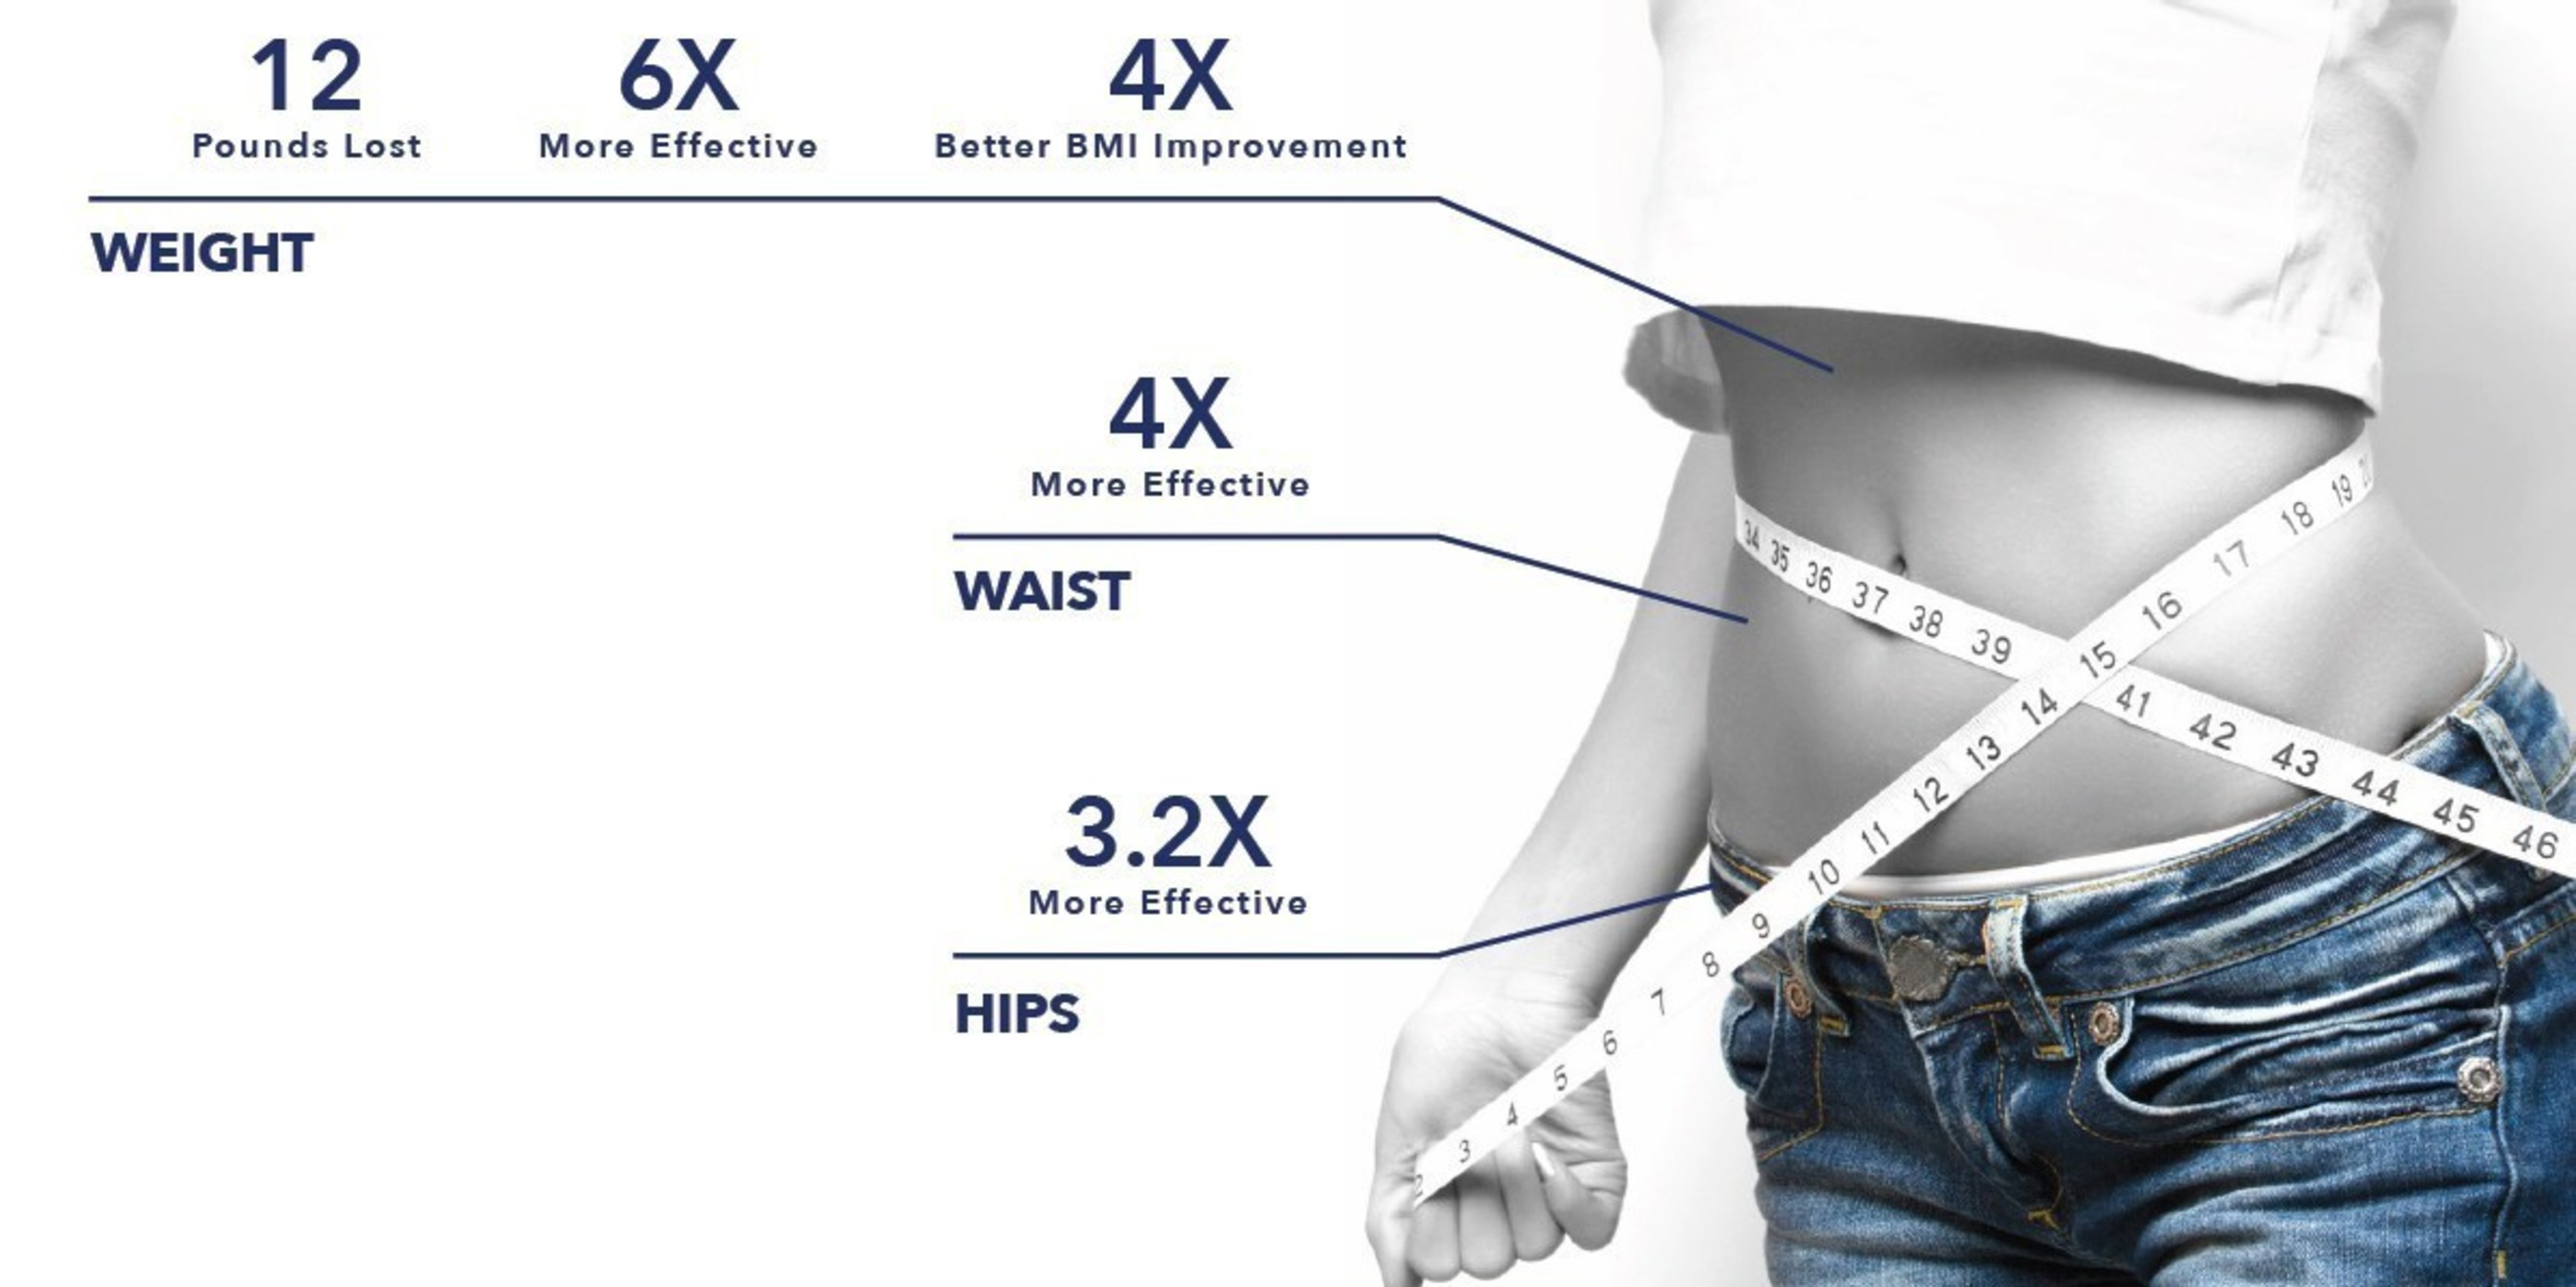 Consistent body weight reductions were observed throughout the 16-week trial - starting with statistically significant weight loss at 2 weeks, with a total weight loss of nearly 12 lbs. by the end of the study. These overweight subjects taking SLIMVANCE lost 2 inches in waist circumference in the study.